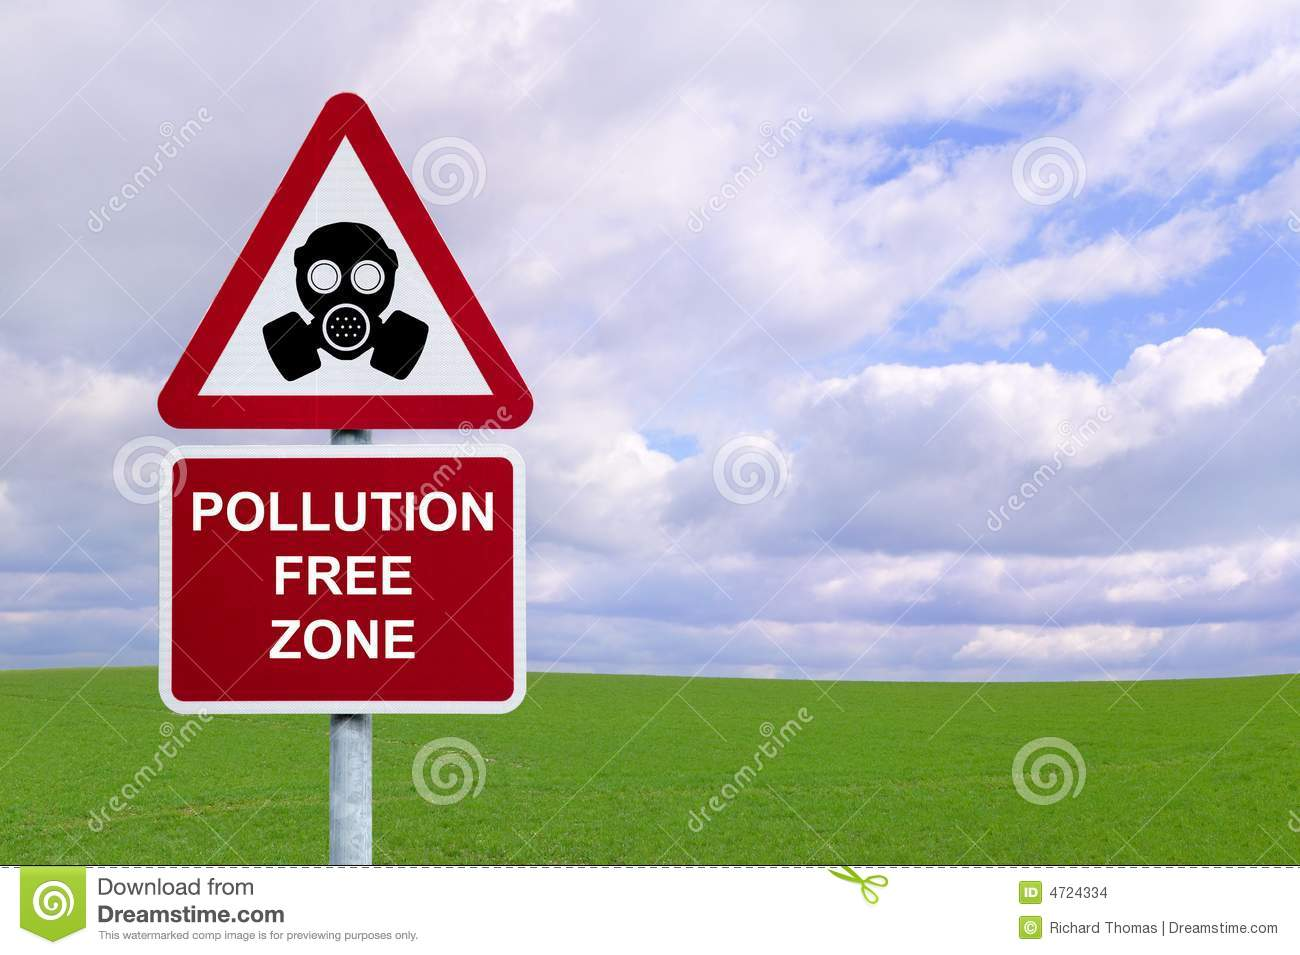 pollution free environment Generally any substance that people introduce into the atmosphere that has damaging effects on living things and the environment is considered air pollution.